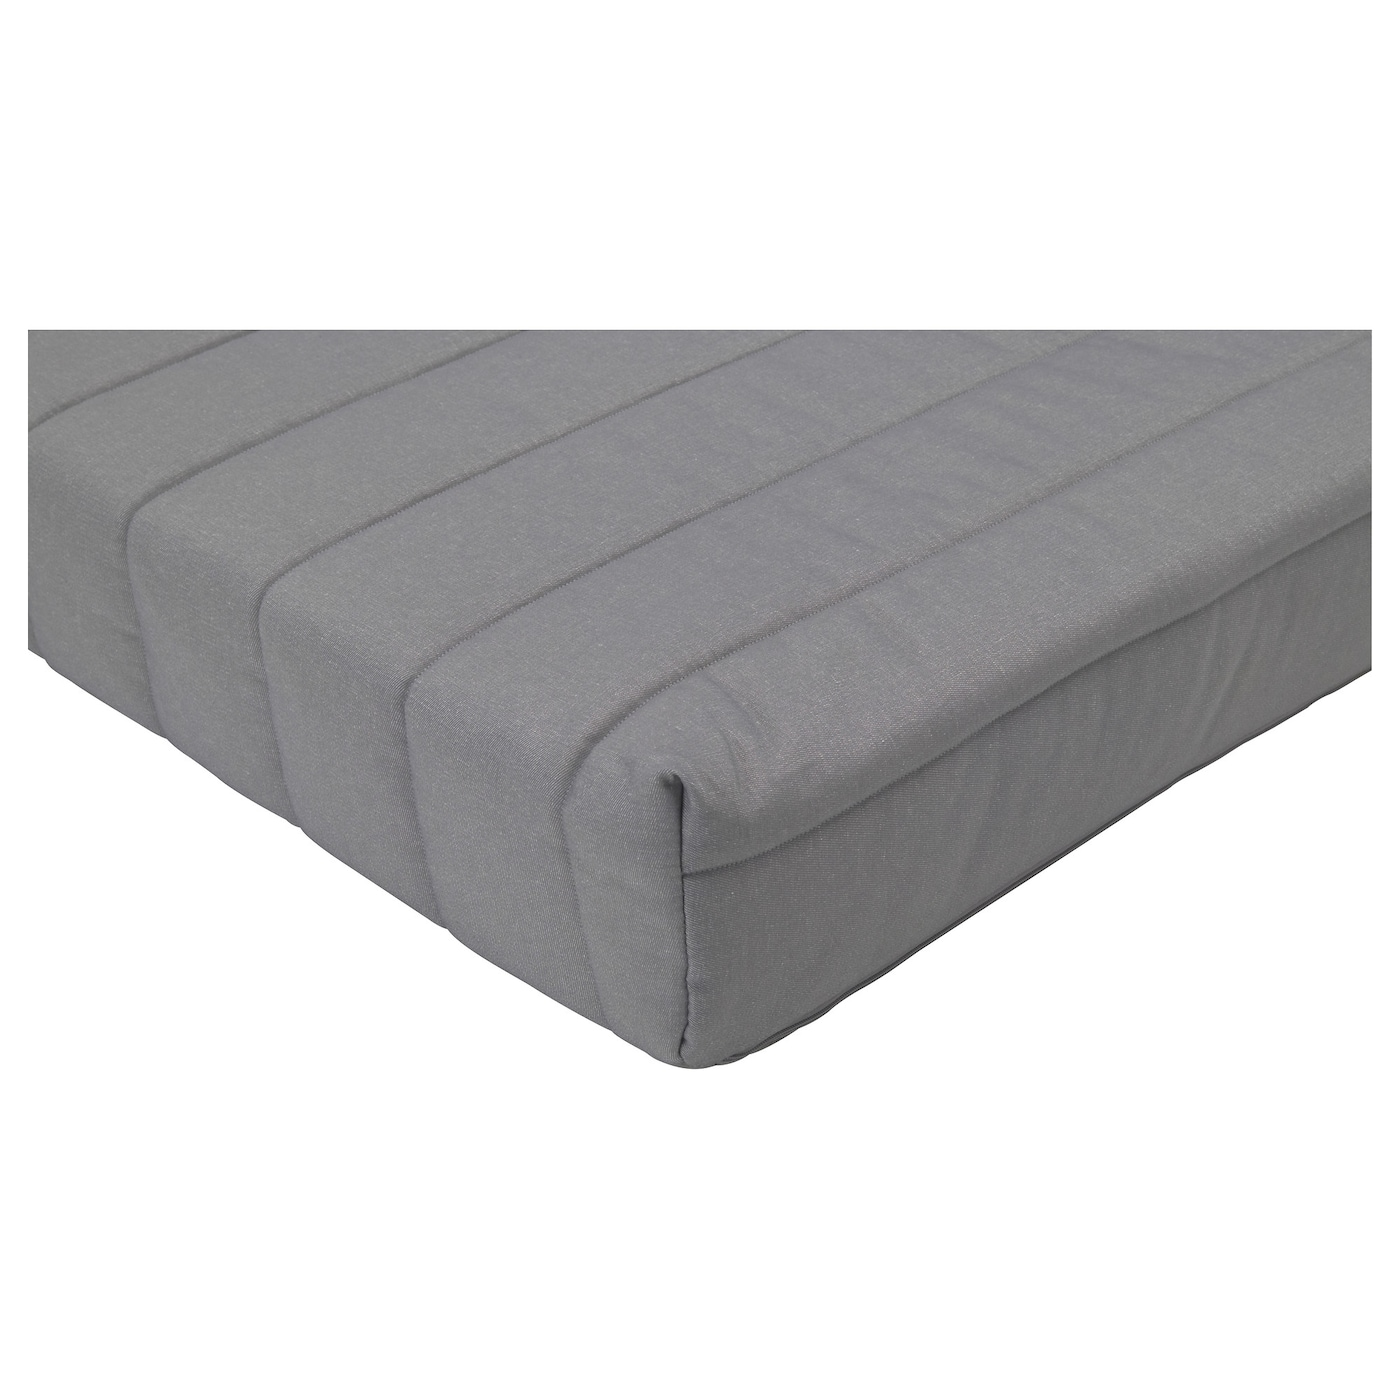 IKEA LYCKSELE LÖVÅS mattress A simple, firm foam mattress for use every night.